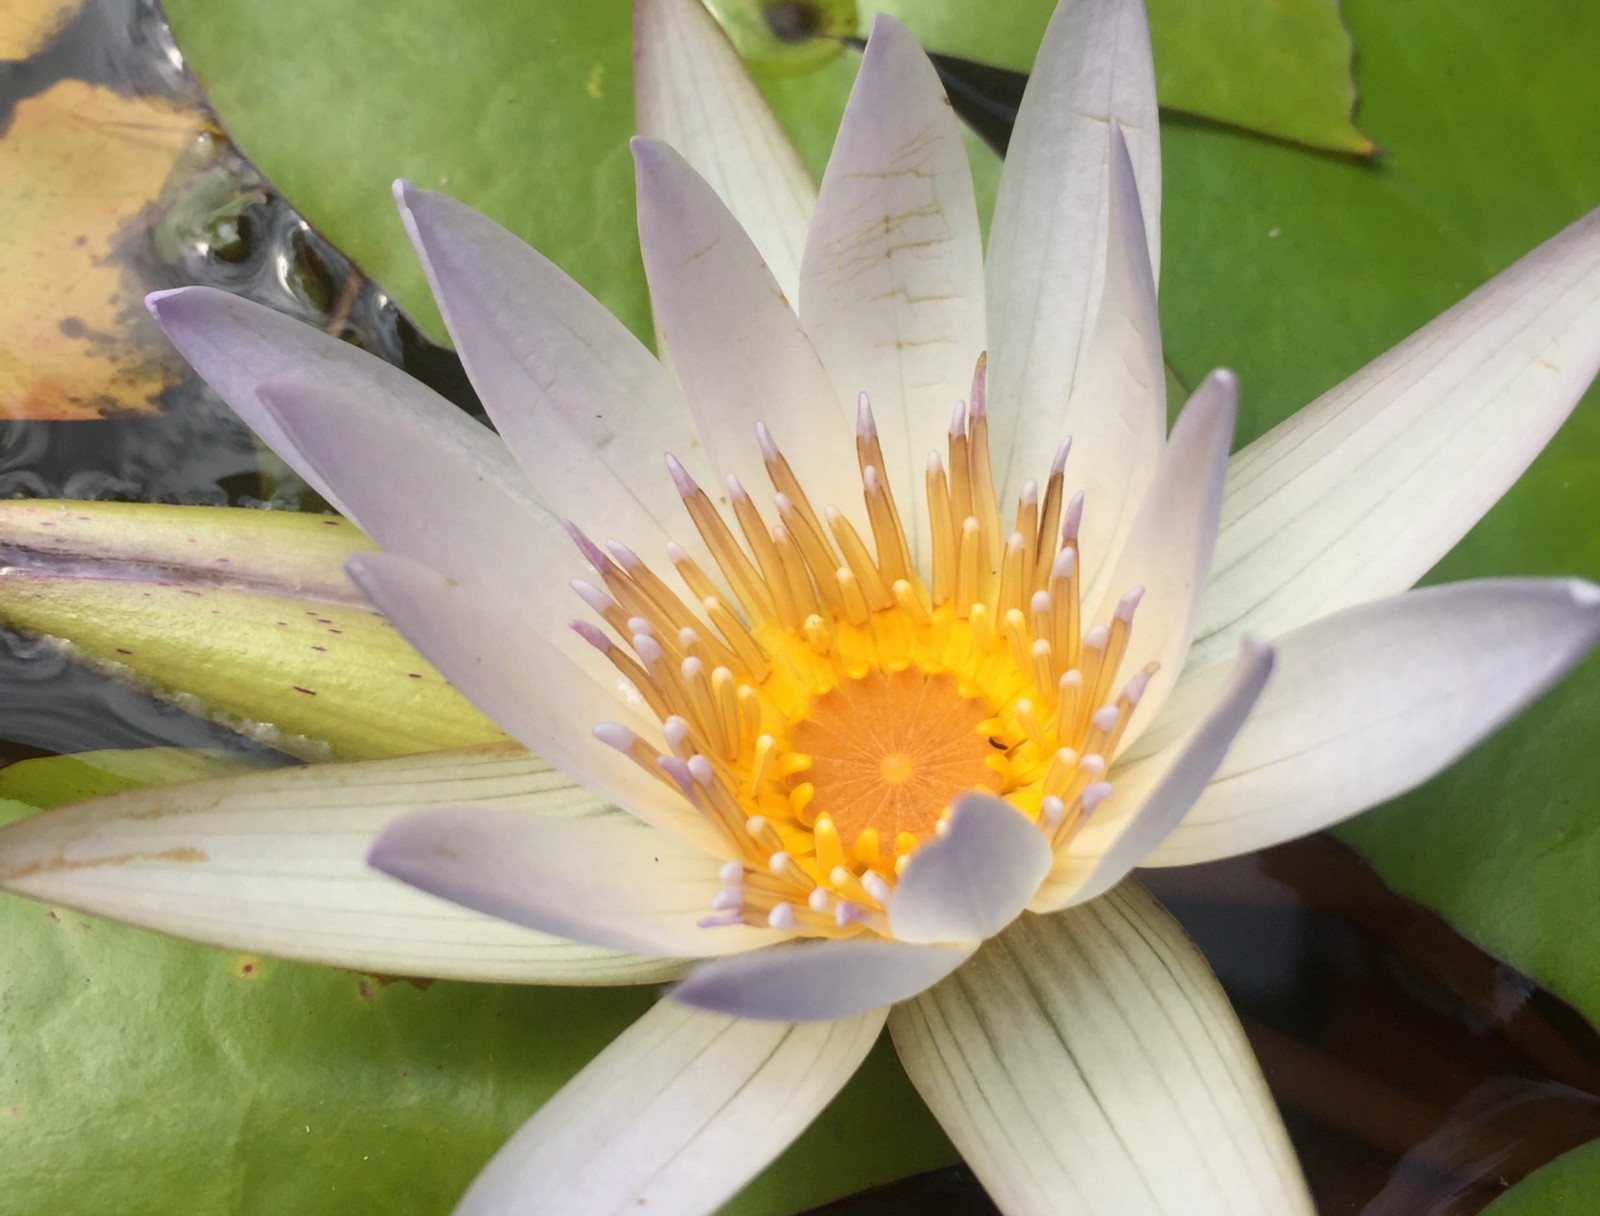 Lotus blossom mudra pranala yoga meets the haka all blacks rugby lotus in bloom in the pond in front of my yoga classroom izmirmasajfo